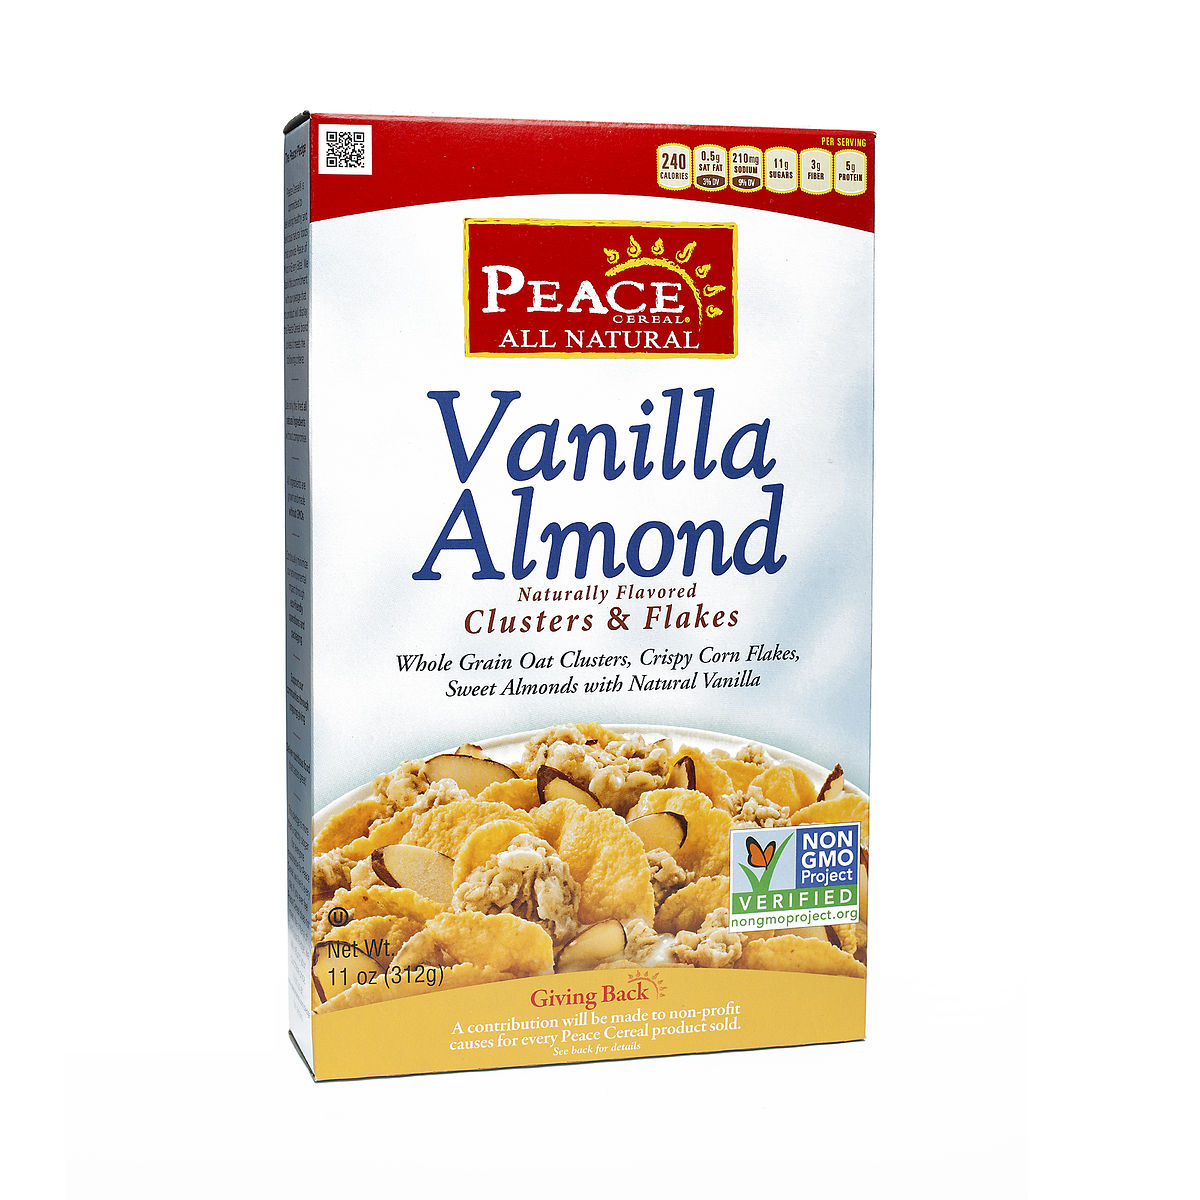 Vanilla Almond Clusters & Flakes Cereal